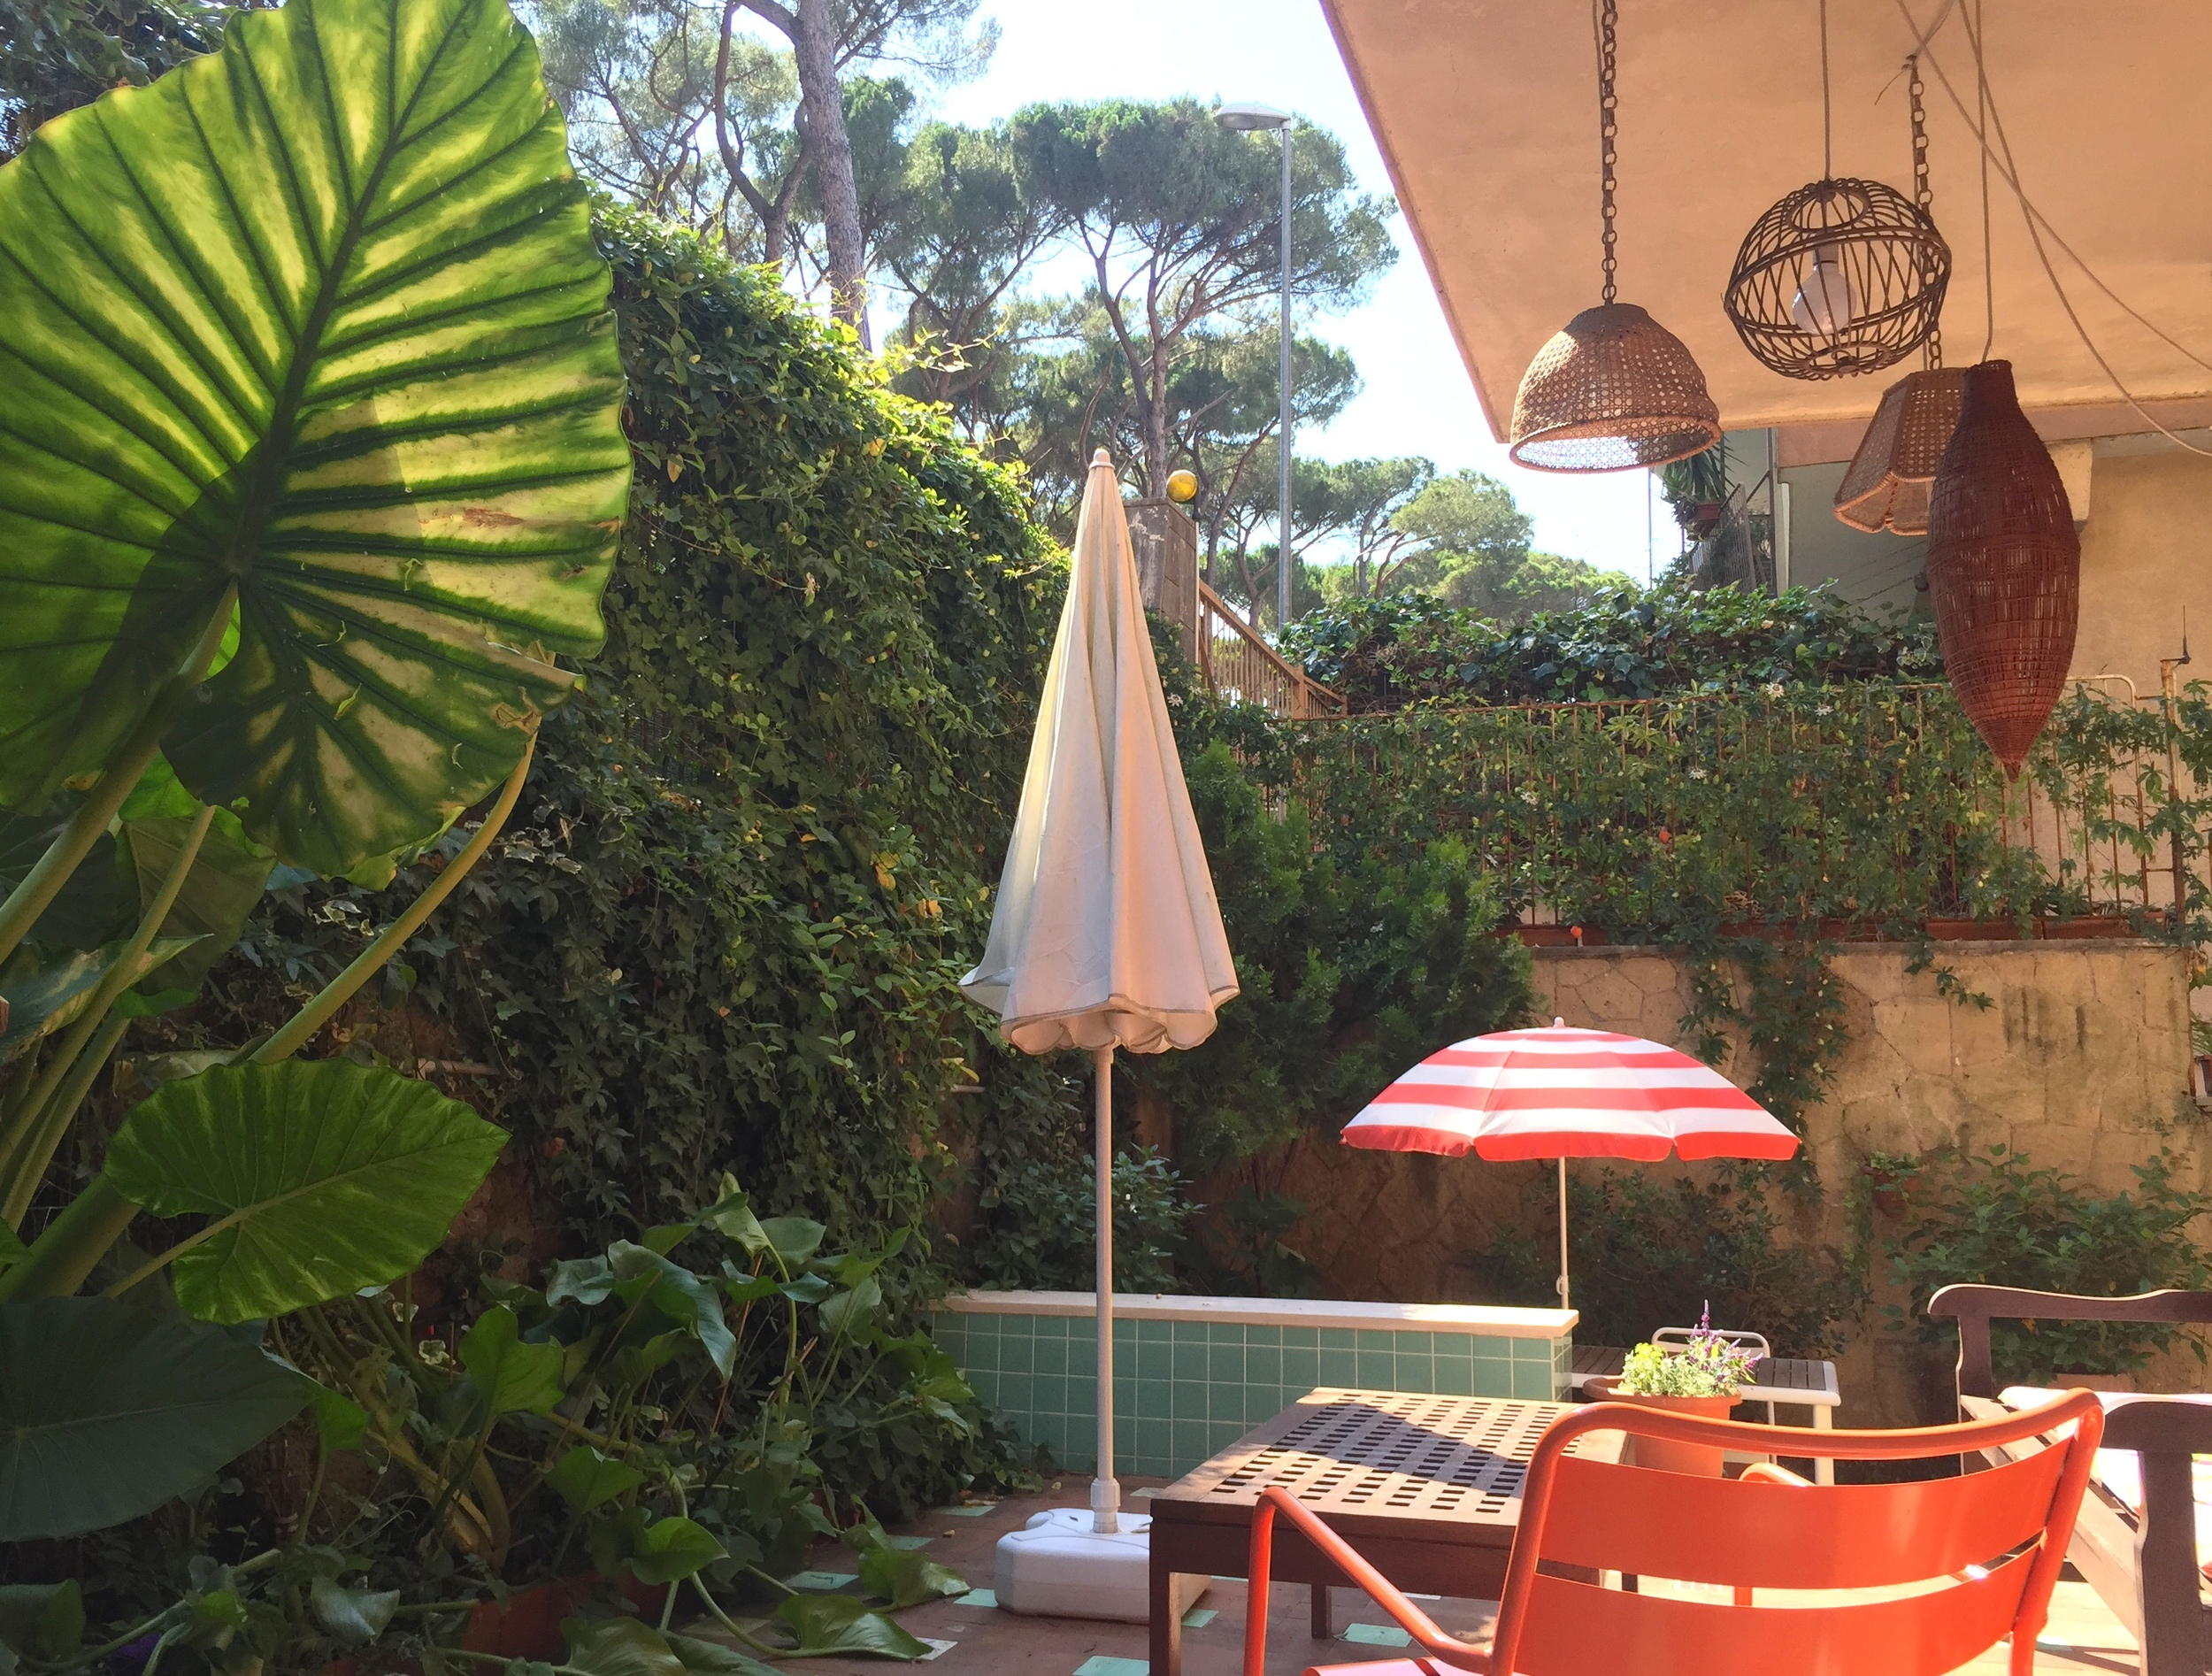 Patio. Trip Styler Tip: Rome has mosquitoes, so if you're going to use this little oasis, put on some repellent or cover your limbs.